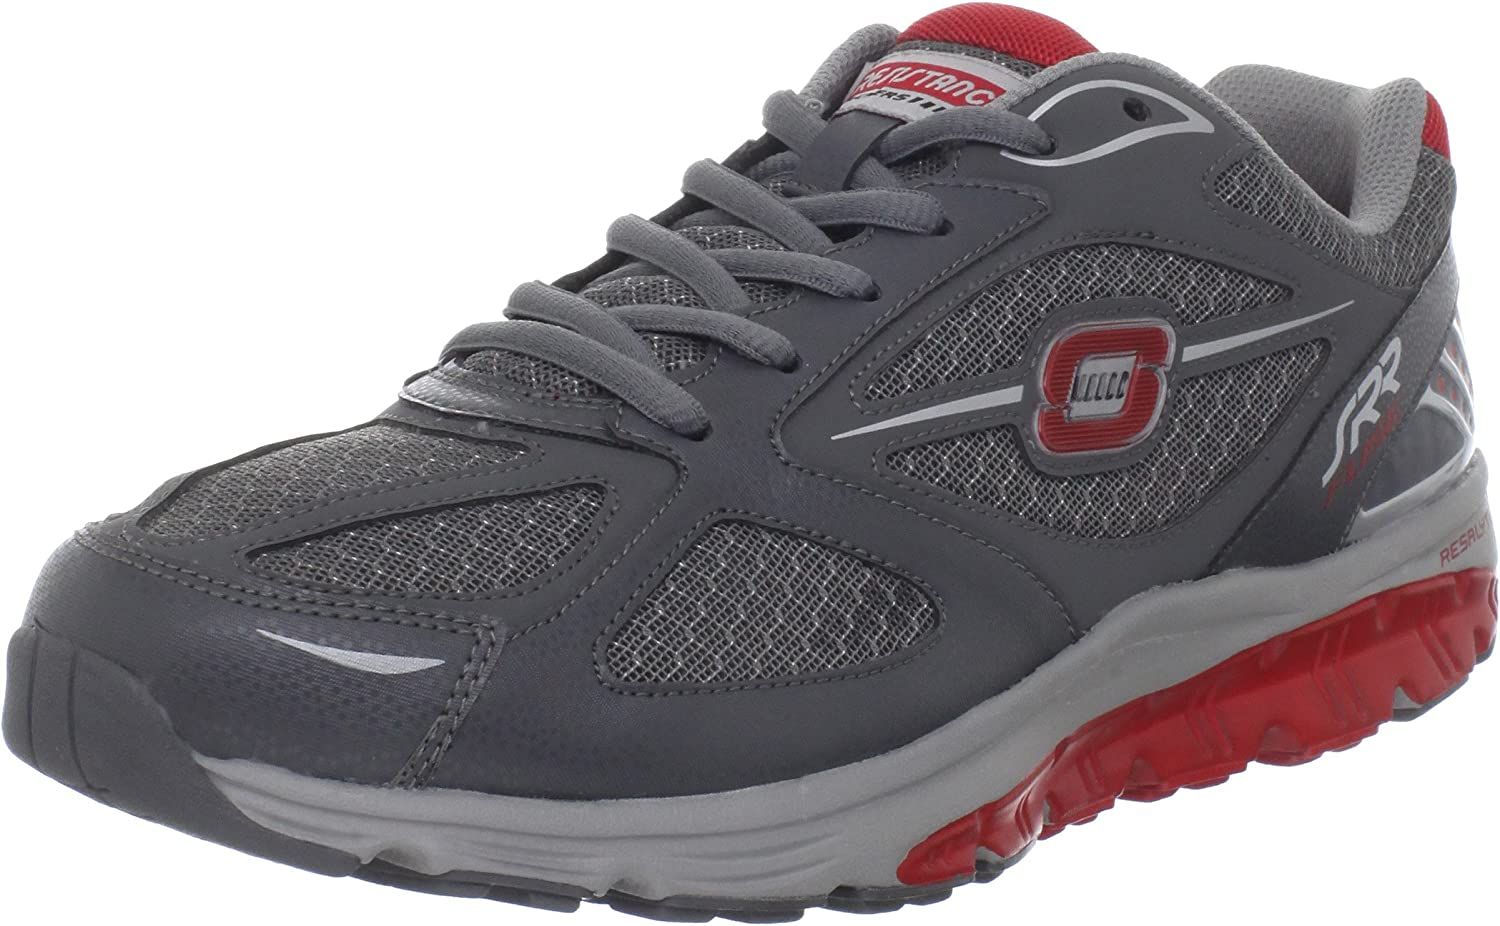 Skechers USA Men's Fuse Running Shoe